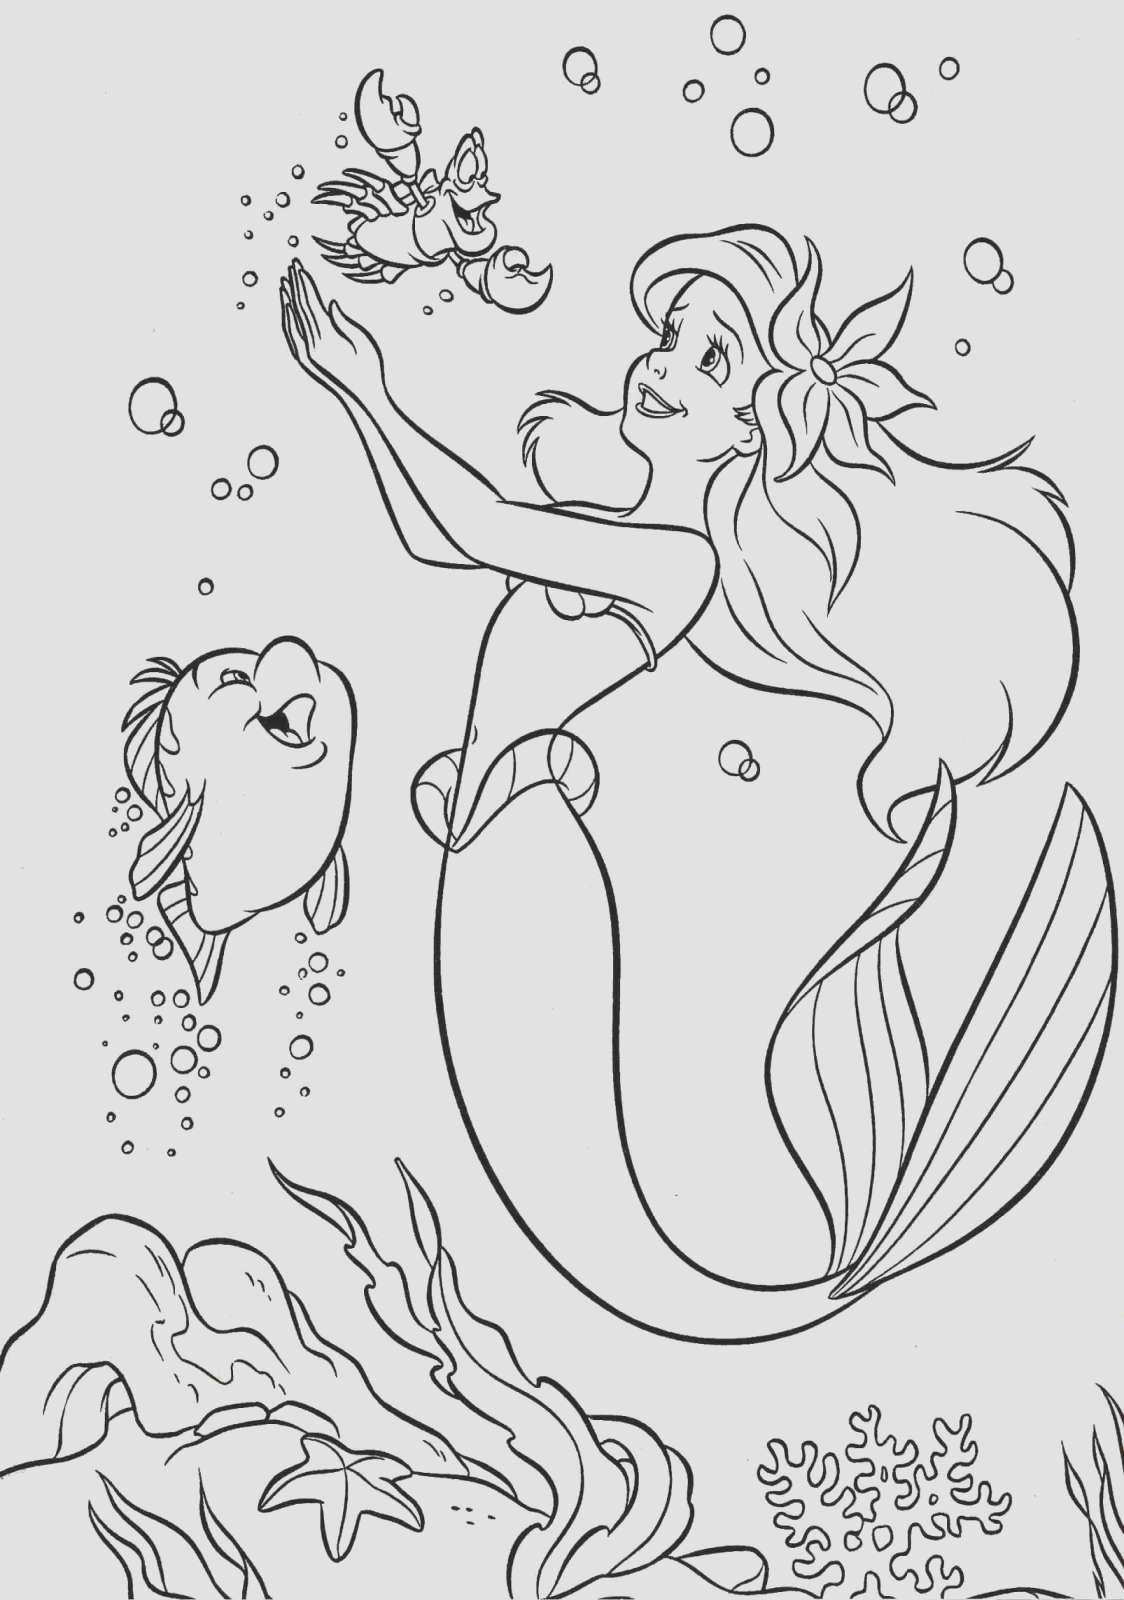 Coloring Pages Of Little Mermaid Disney Characters Printable Coloring Pages Colouring Pages Coloring